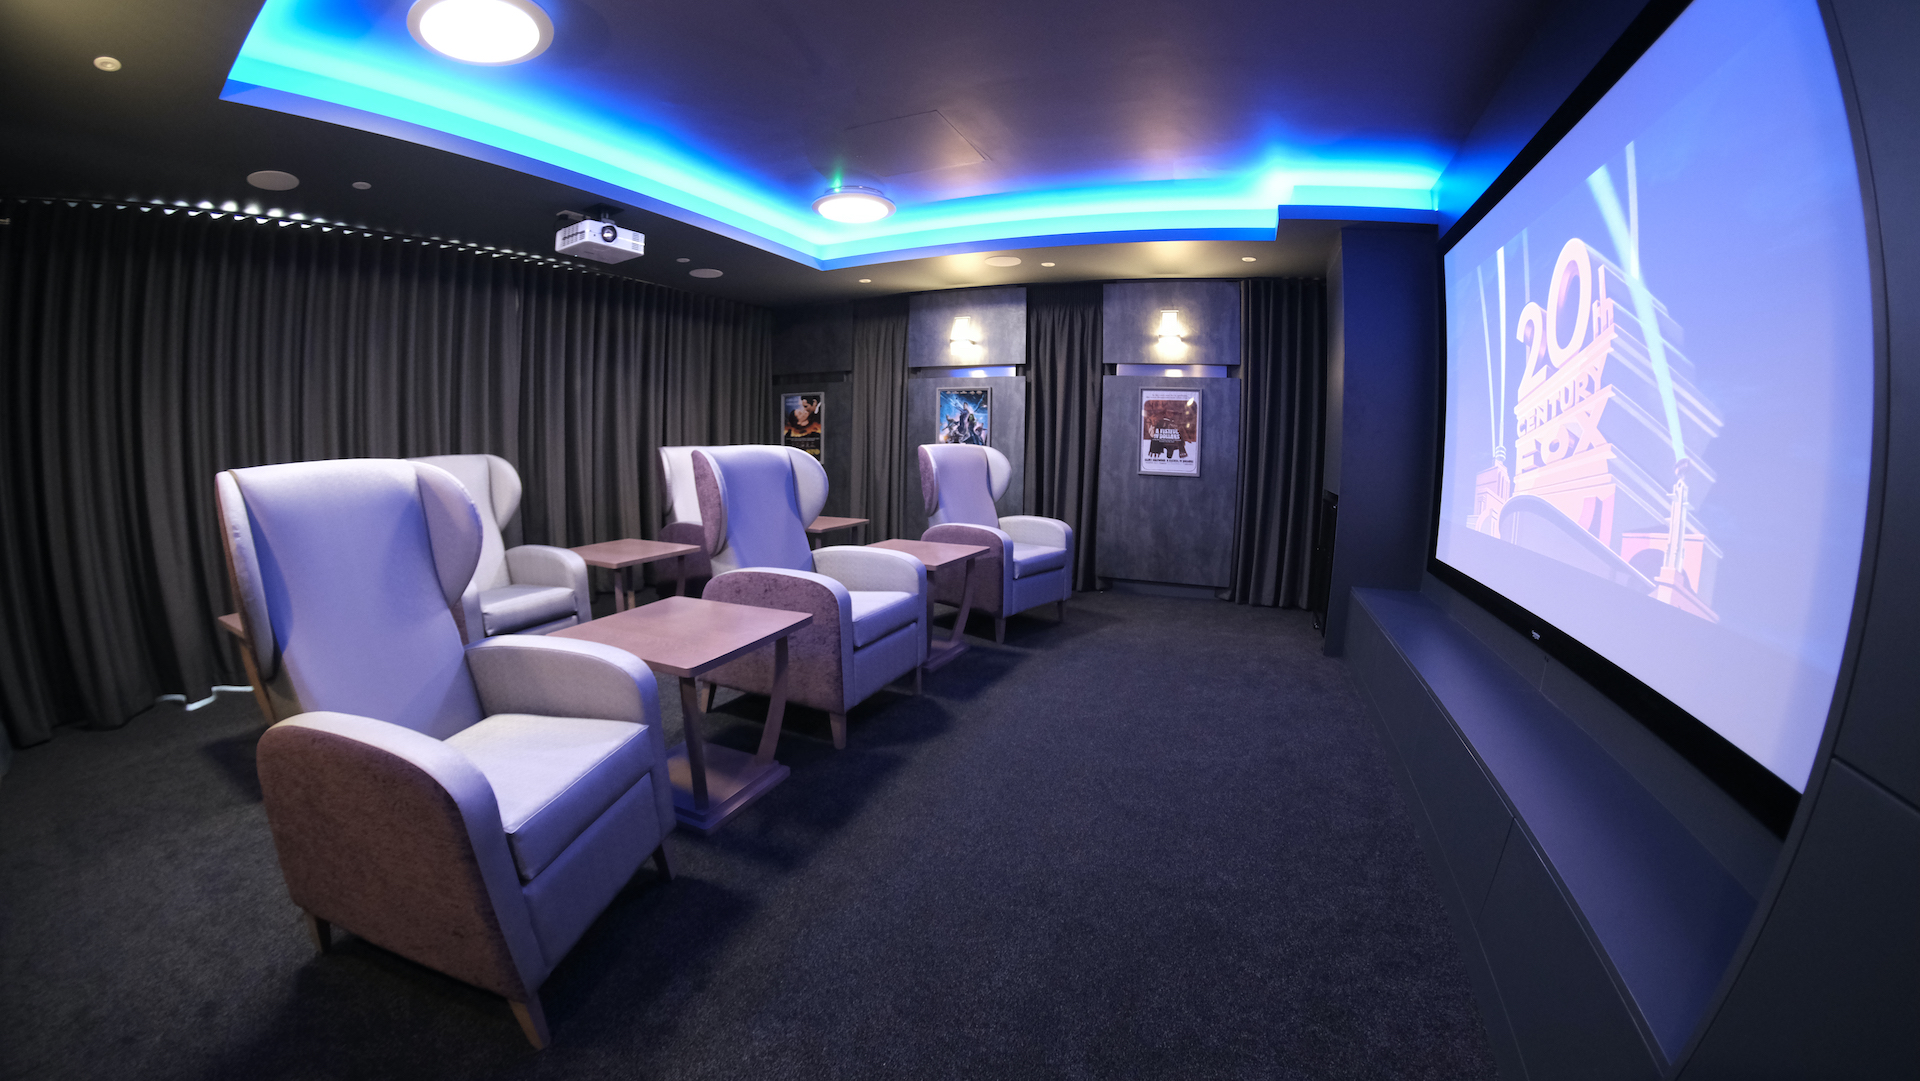 home cinema system installers